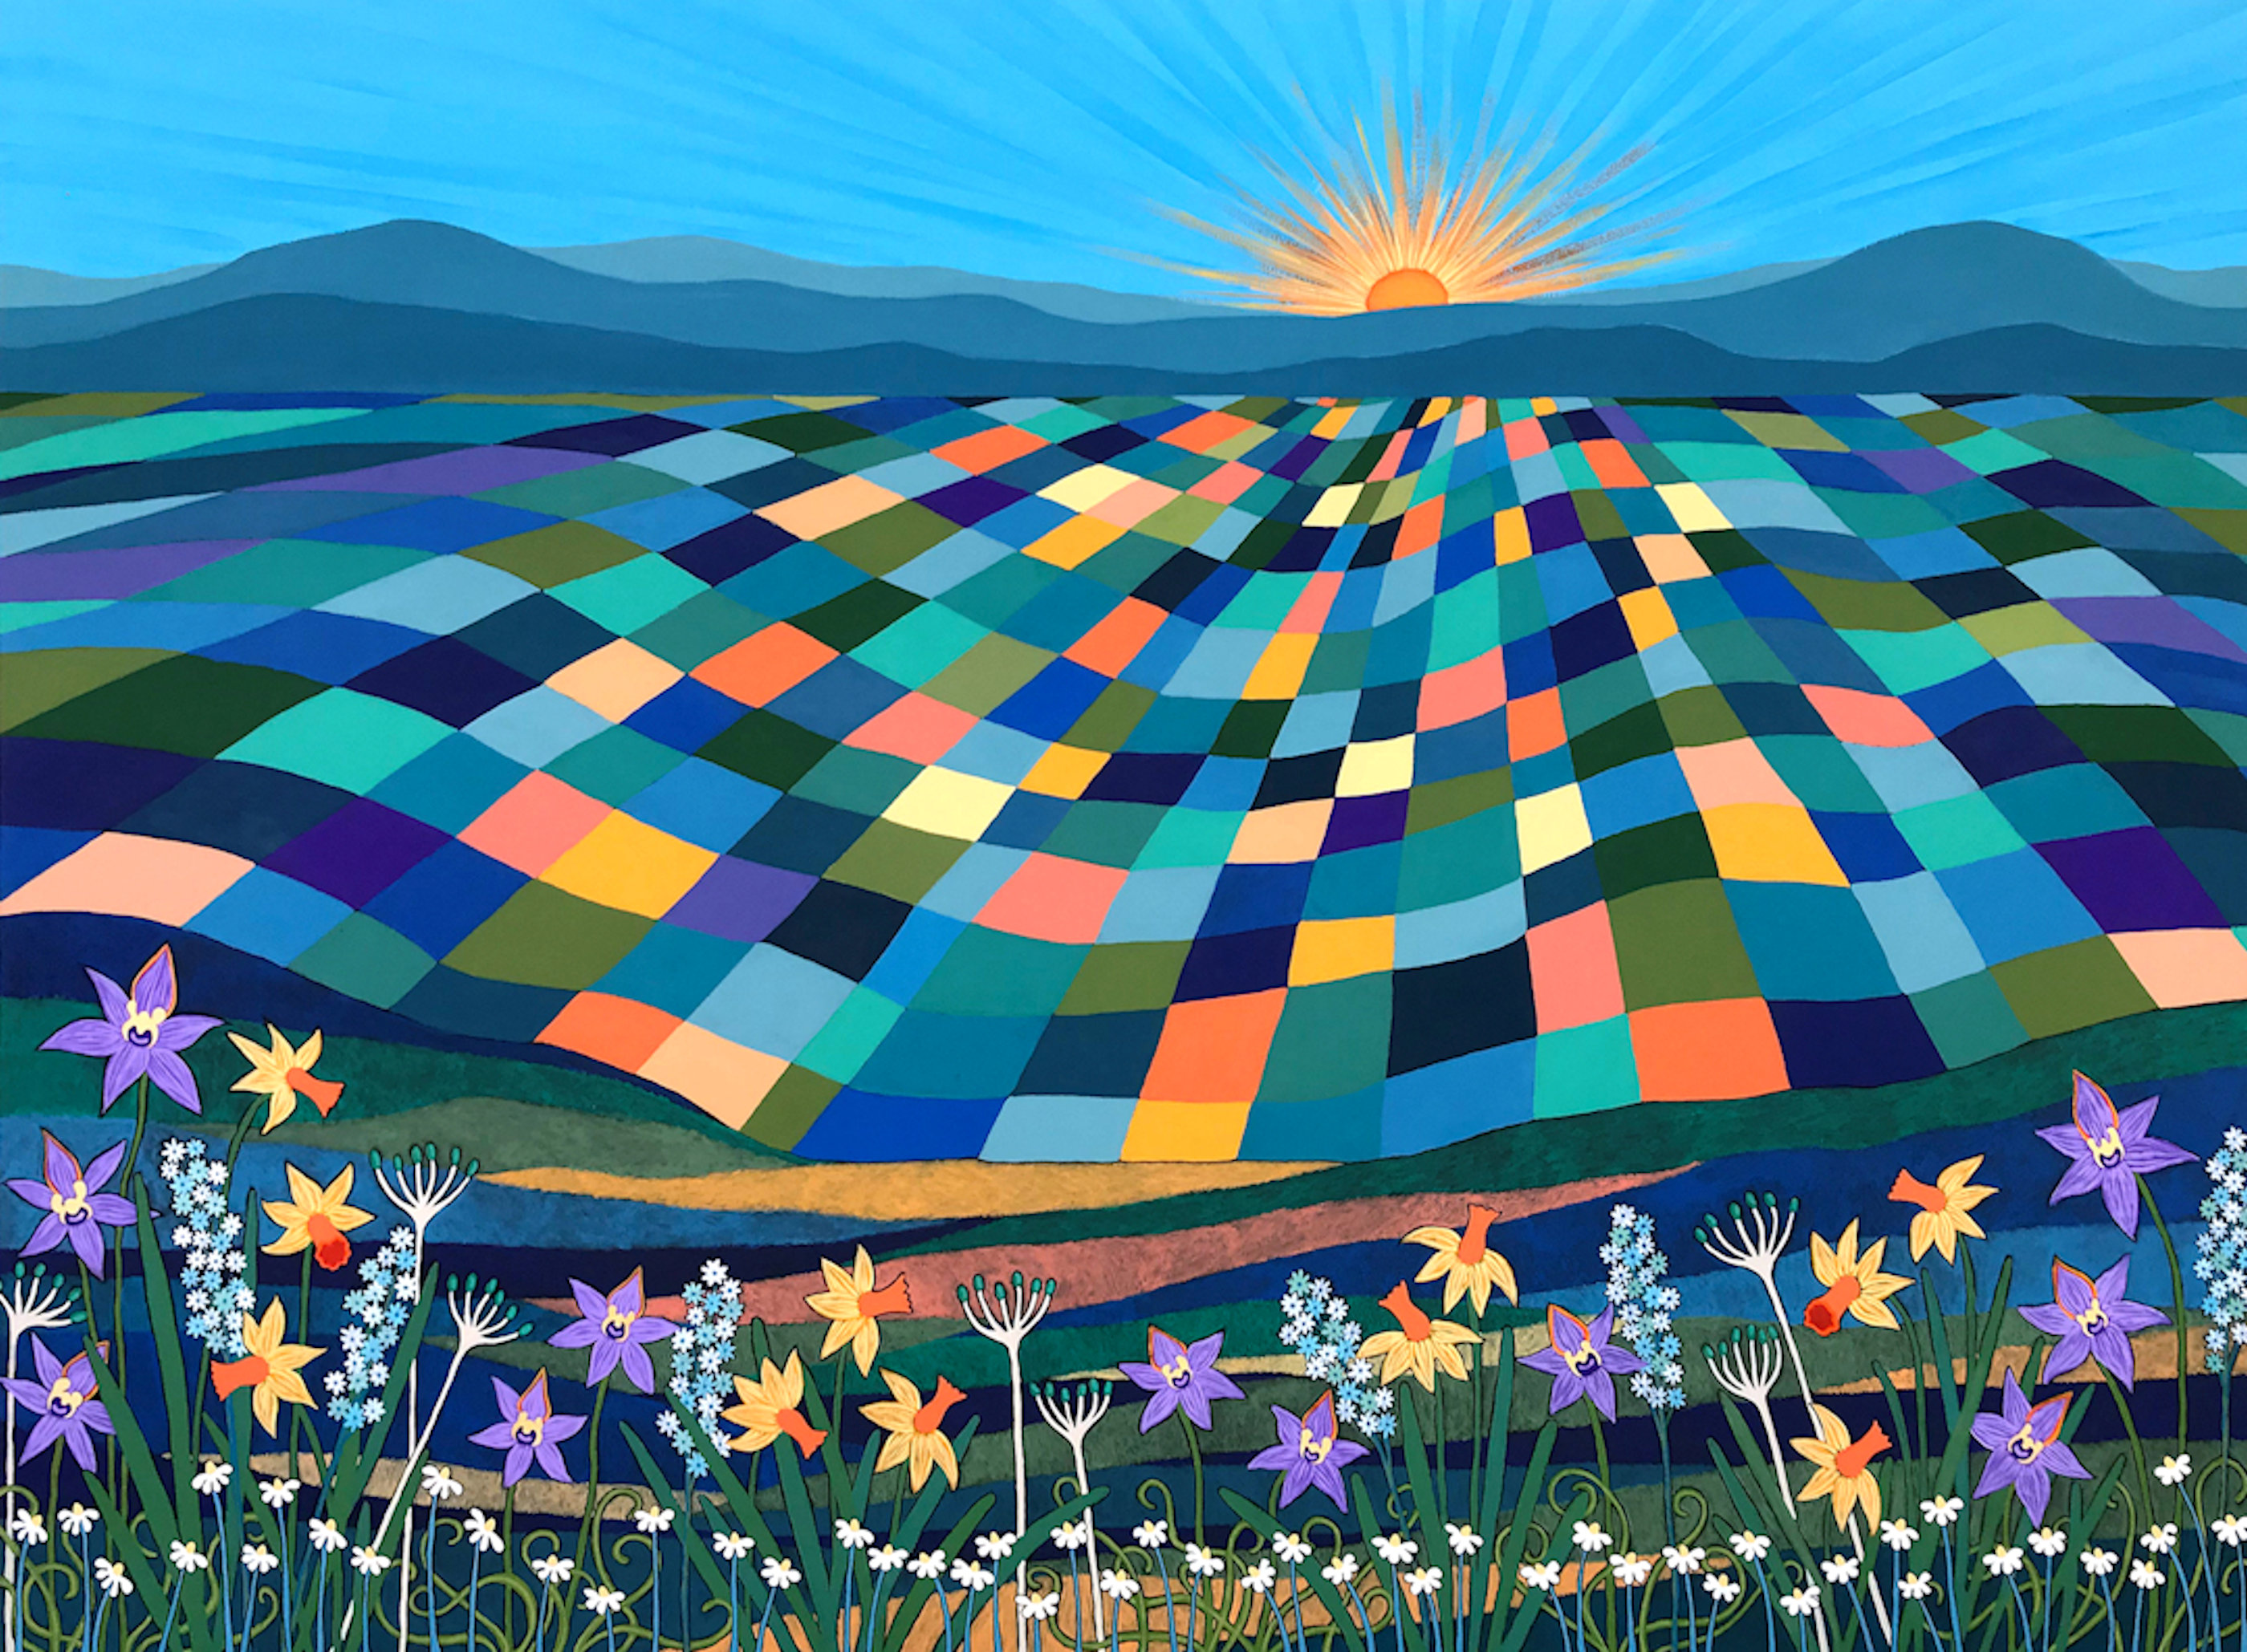 Bright Sun Shiny Day By Lisa Frances Judd 72dpi